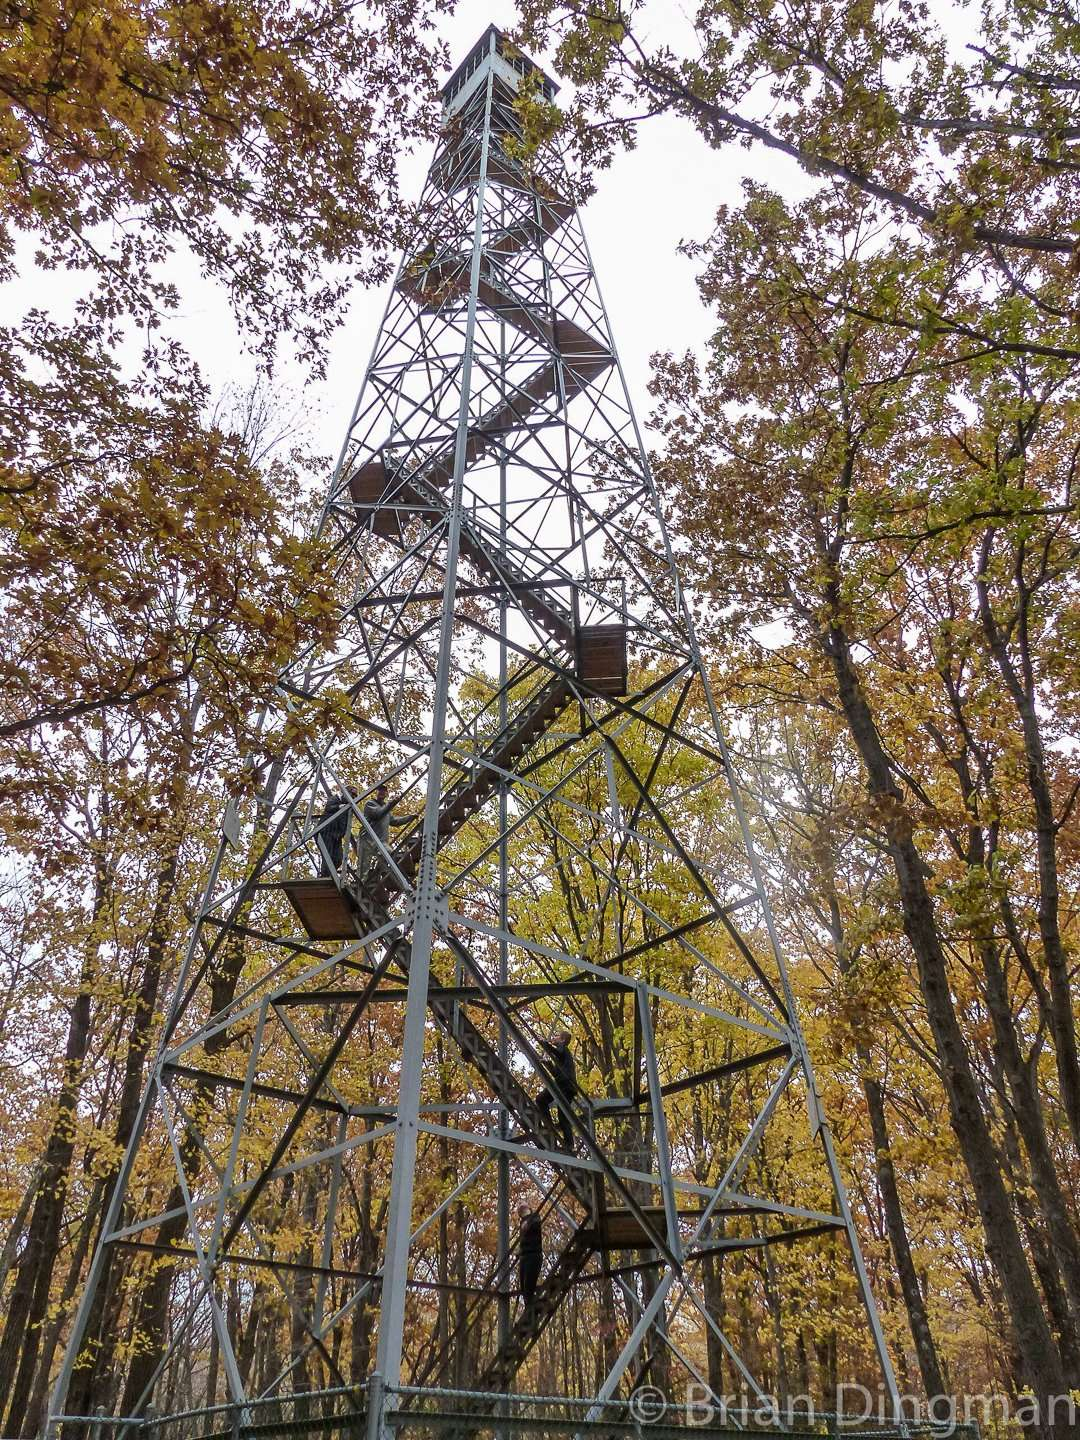 The observation tower is just off the Matthew Lourey State Trail in the southwestern corner of St. Croix State Park